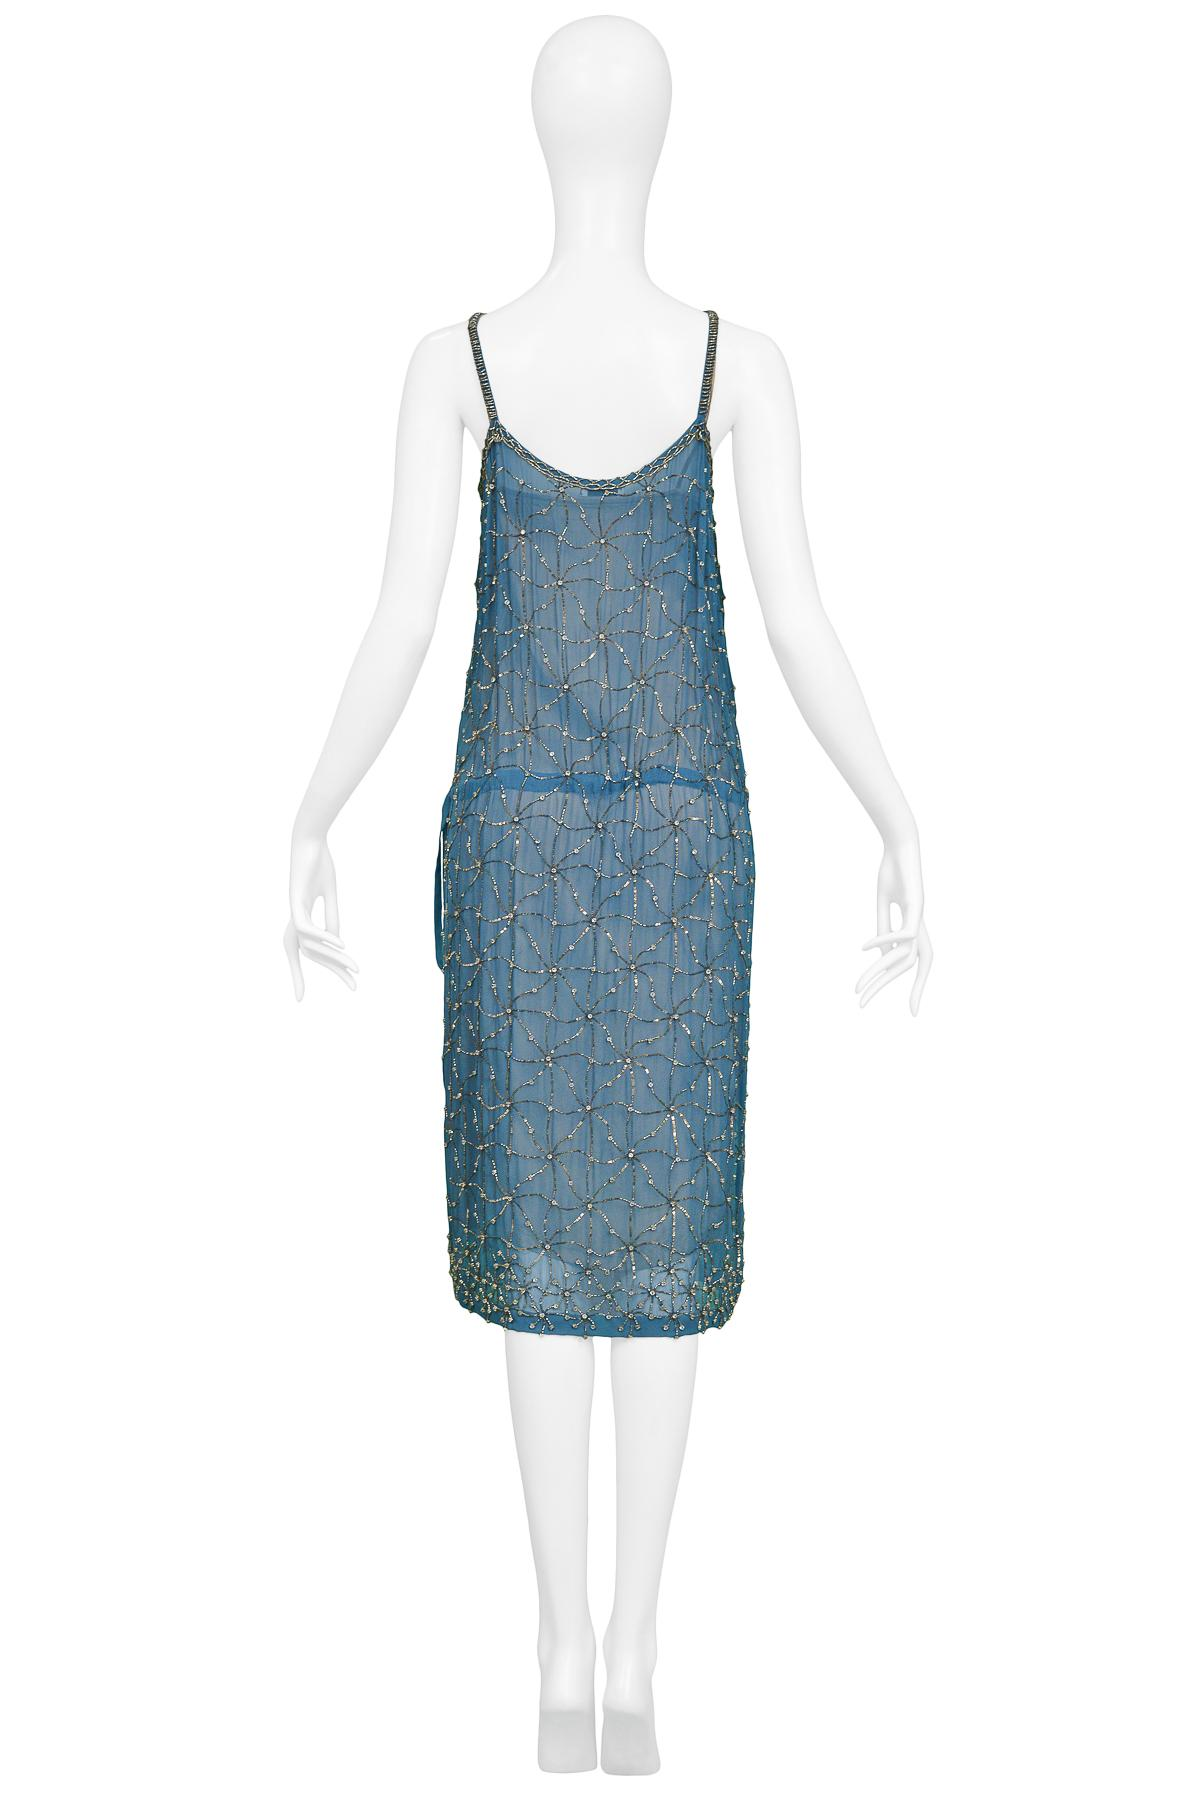 b87de9e18ad95d Vintage Dries Van Noten Blue Beaded Slip Dress For Sale at 1stdibs